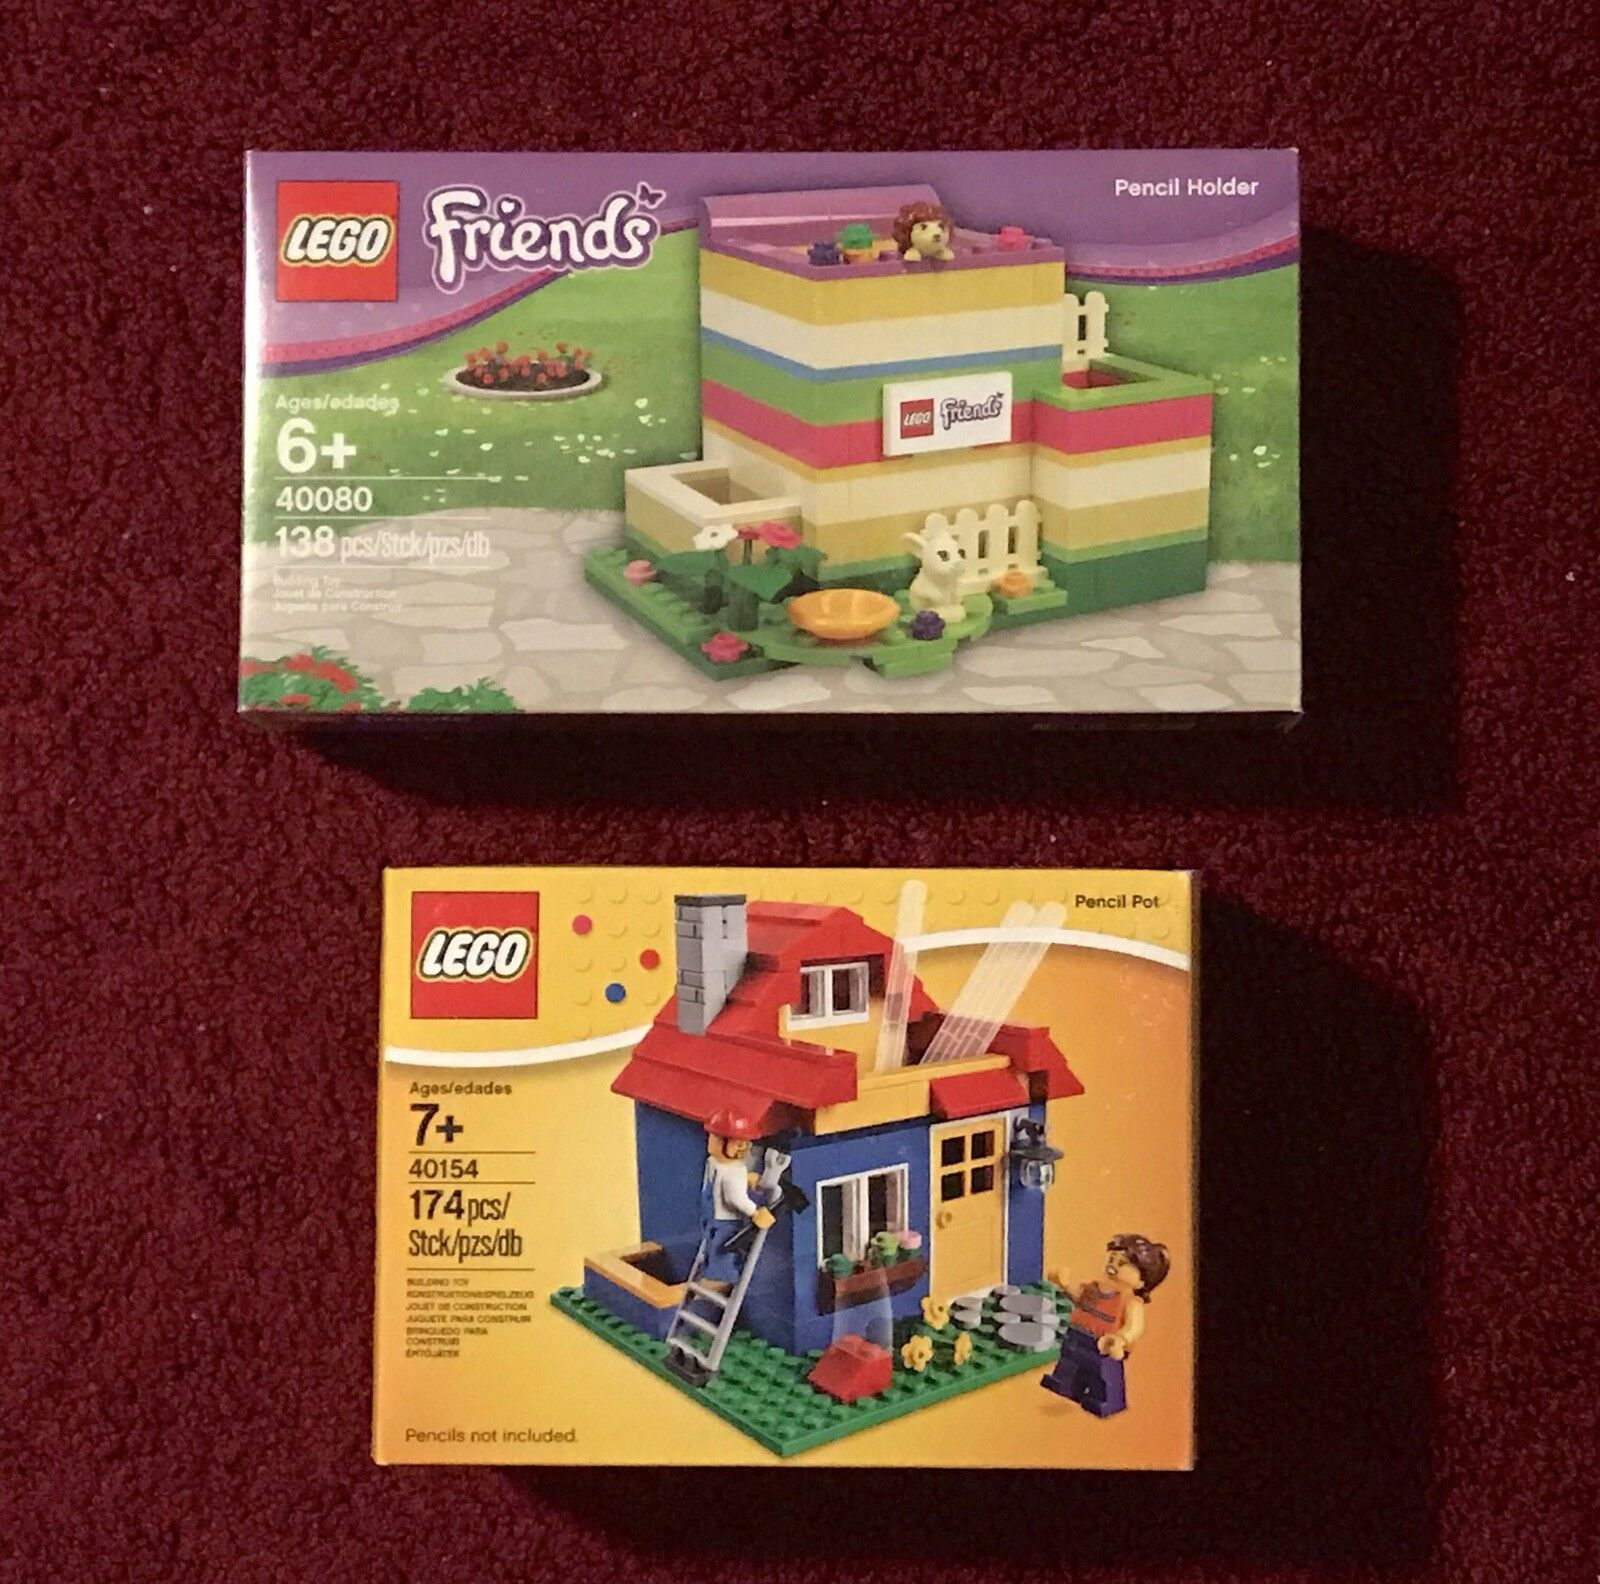 Lego Nuovo Friends Pencil Holder 40080,City Pencil Pot House Set 40154